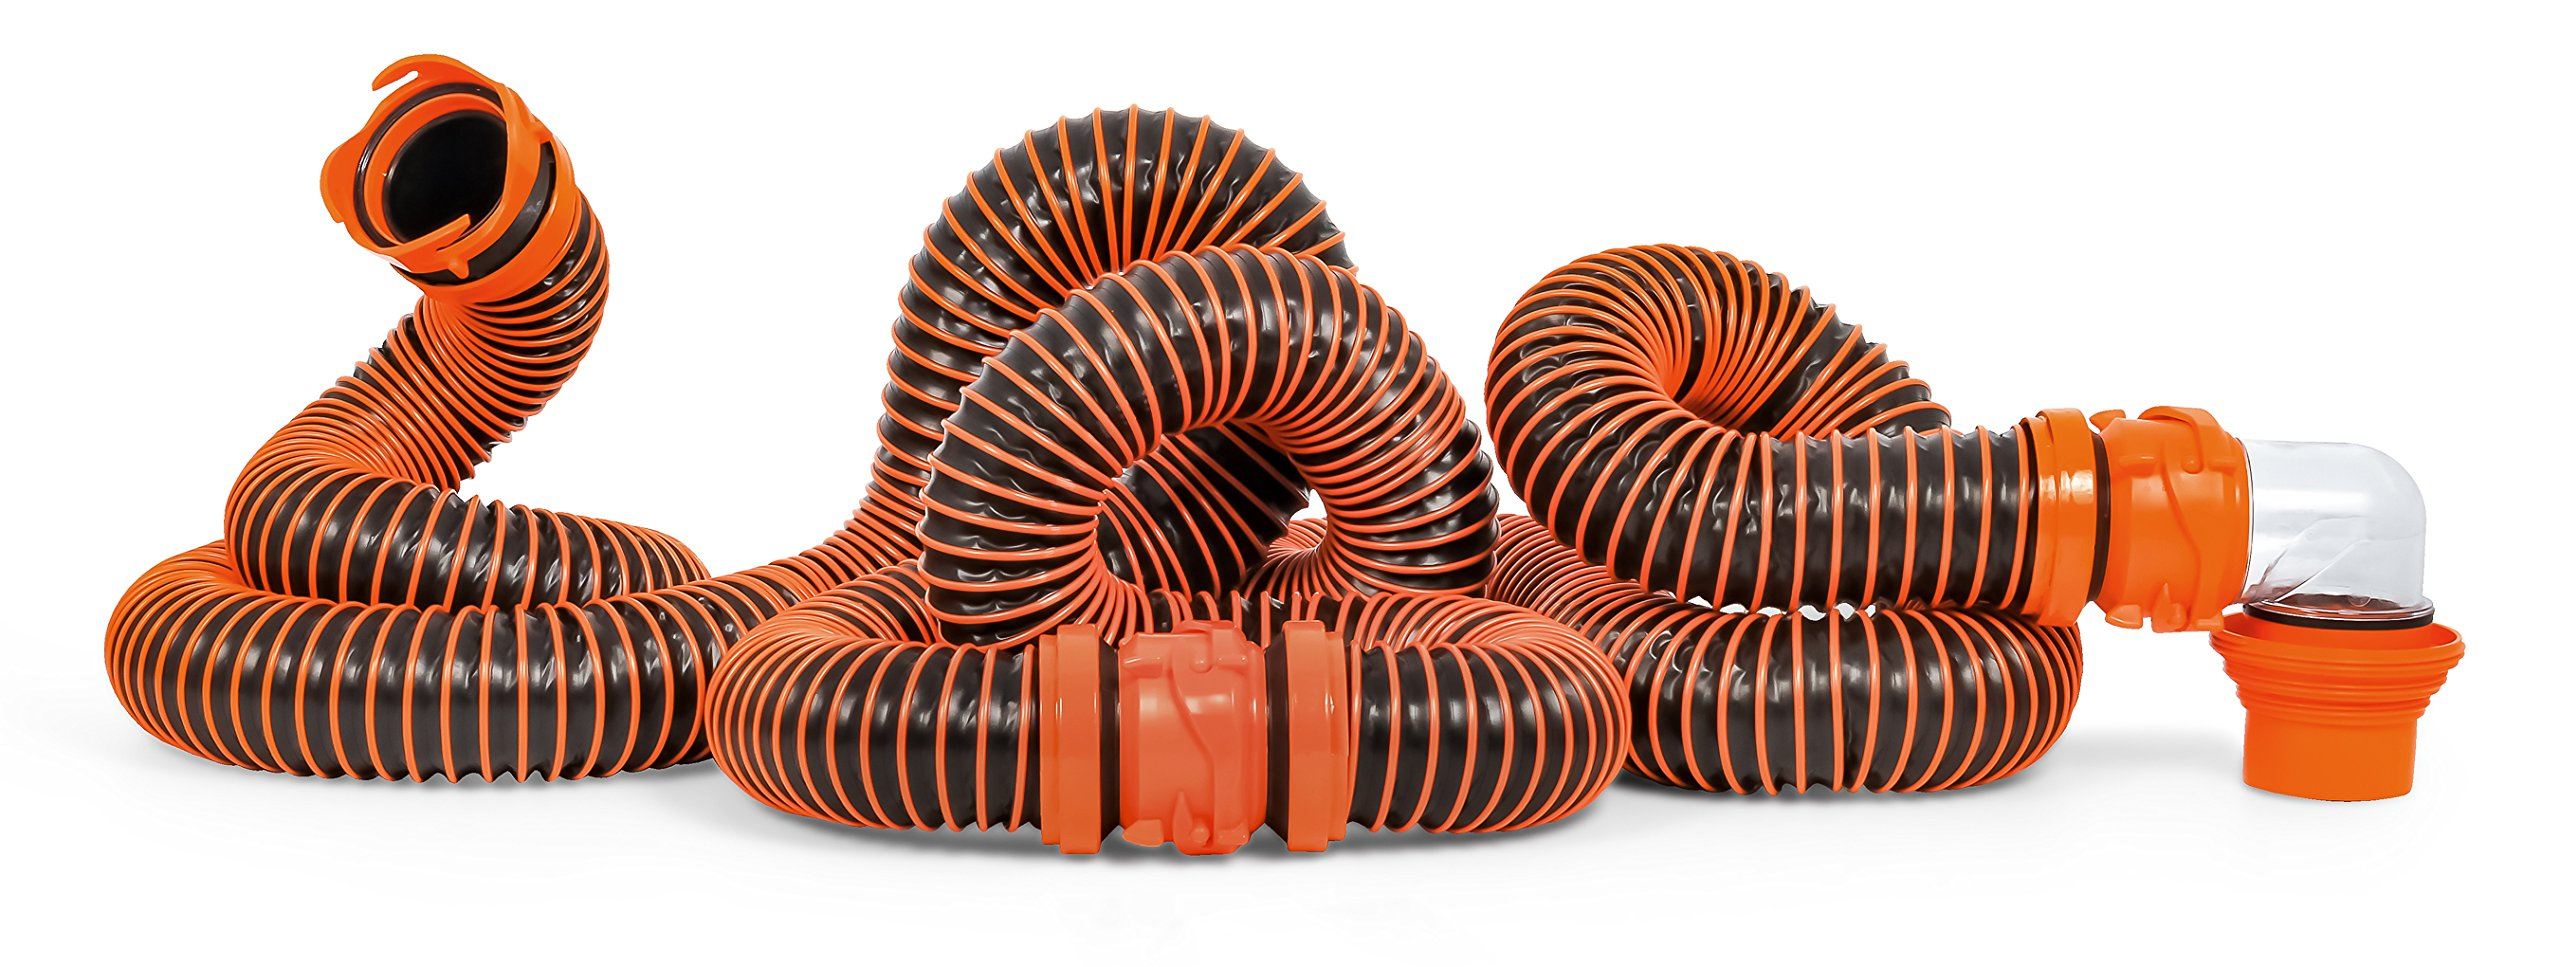 Camco RhinoEXTREME 20ft RV Sewer Hose Kit, Includes Swivel Fitting and Translucent Elbow with 4-In-1 Dump Station Fitting, Crush Resistant, Storage Caps Included